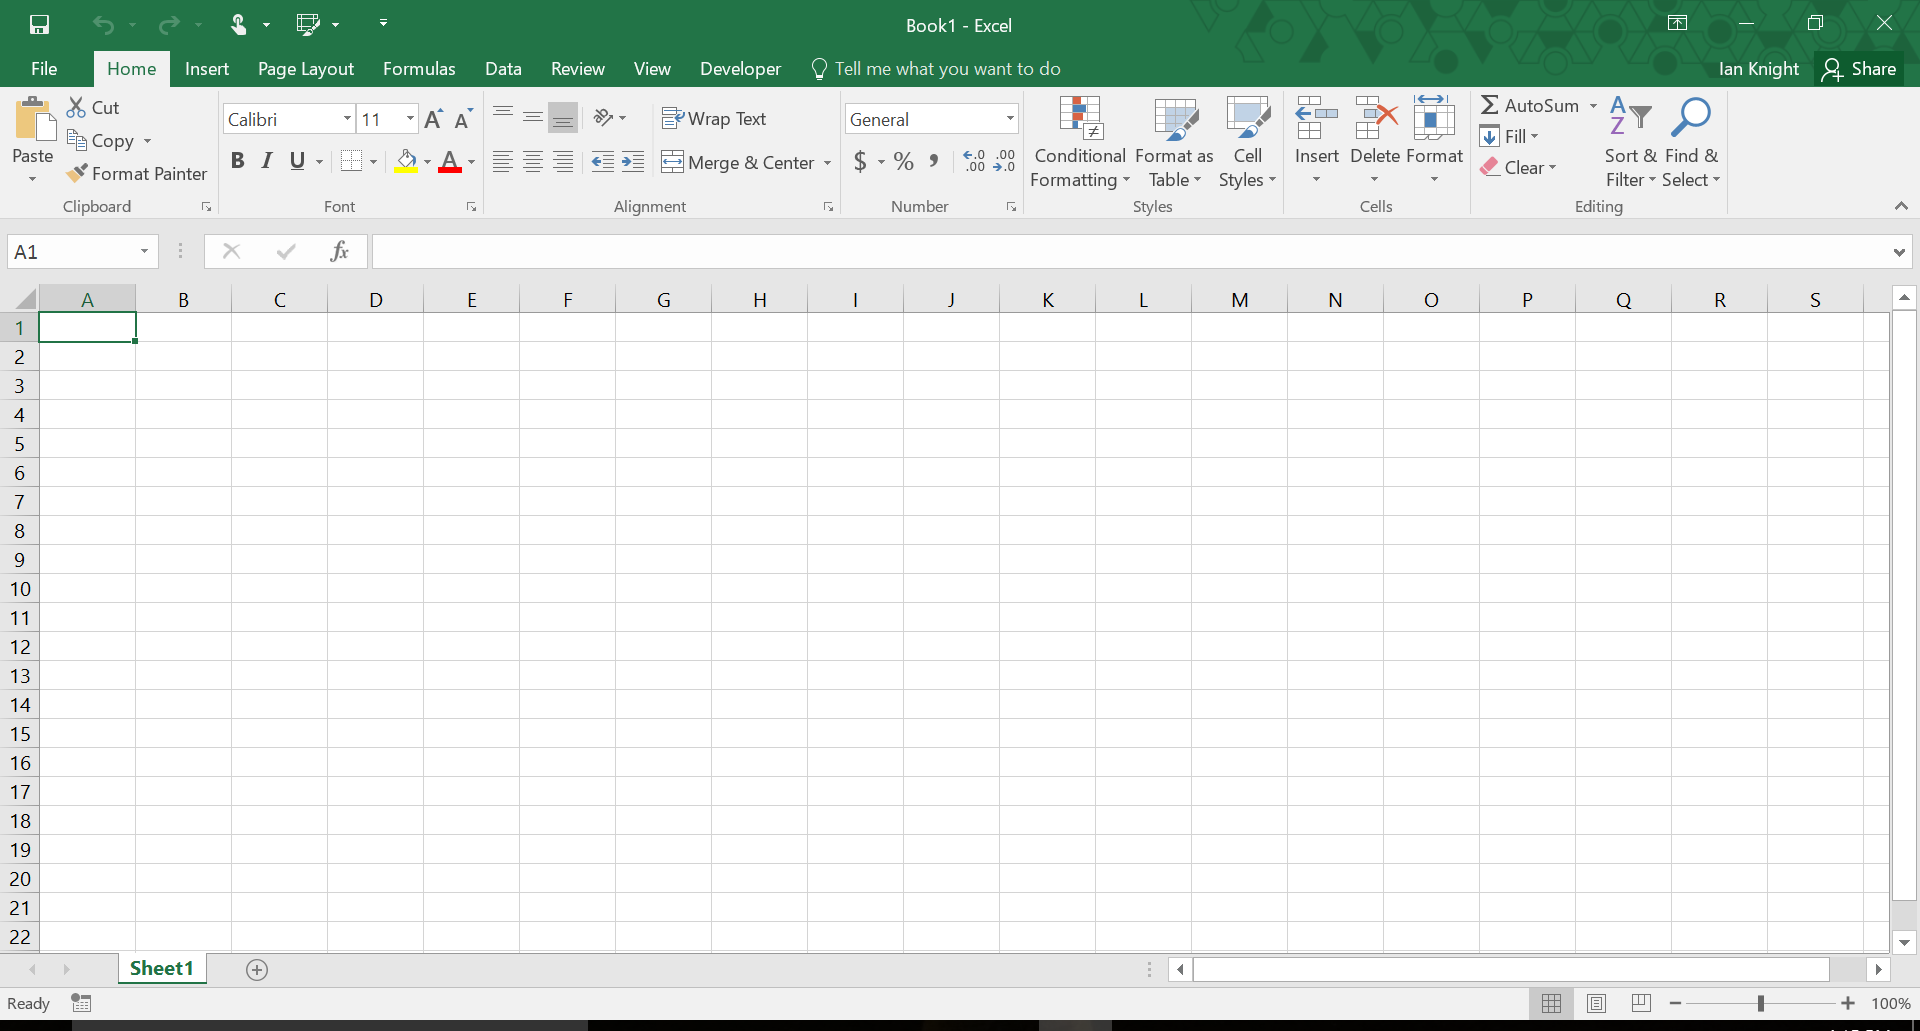 2016 Excel Worksheet : Design critique microsoft excel information